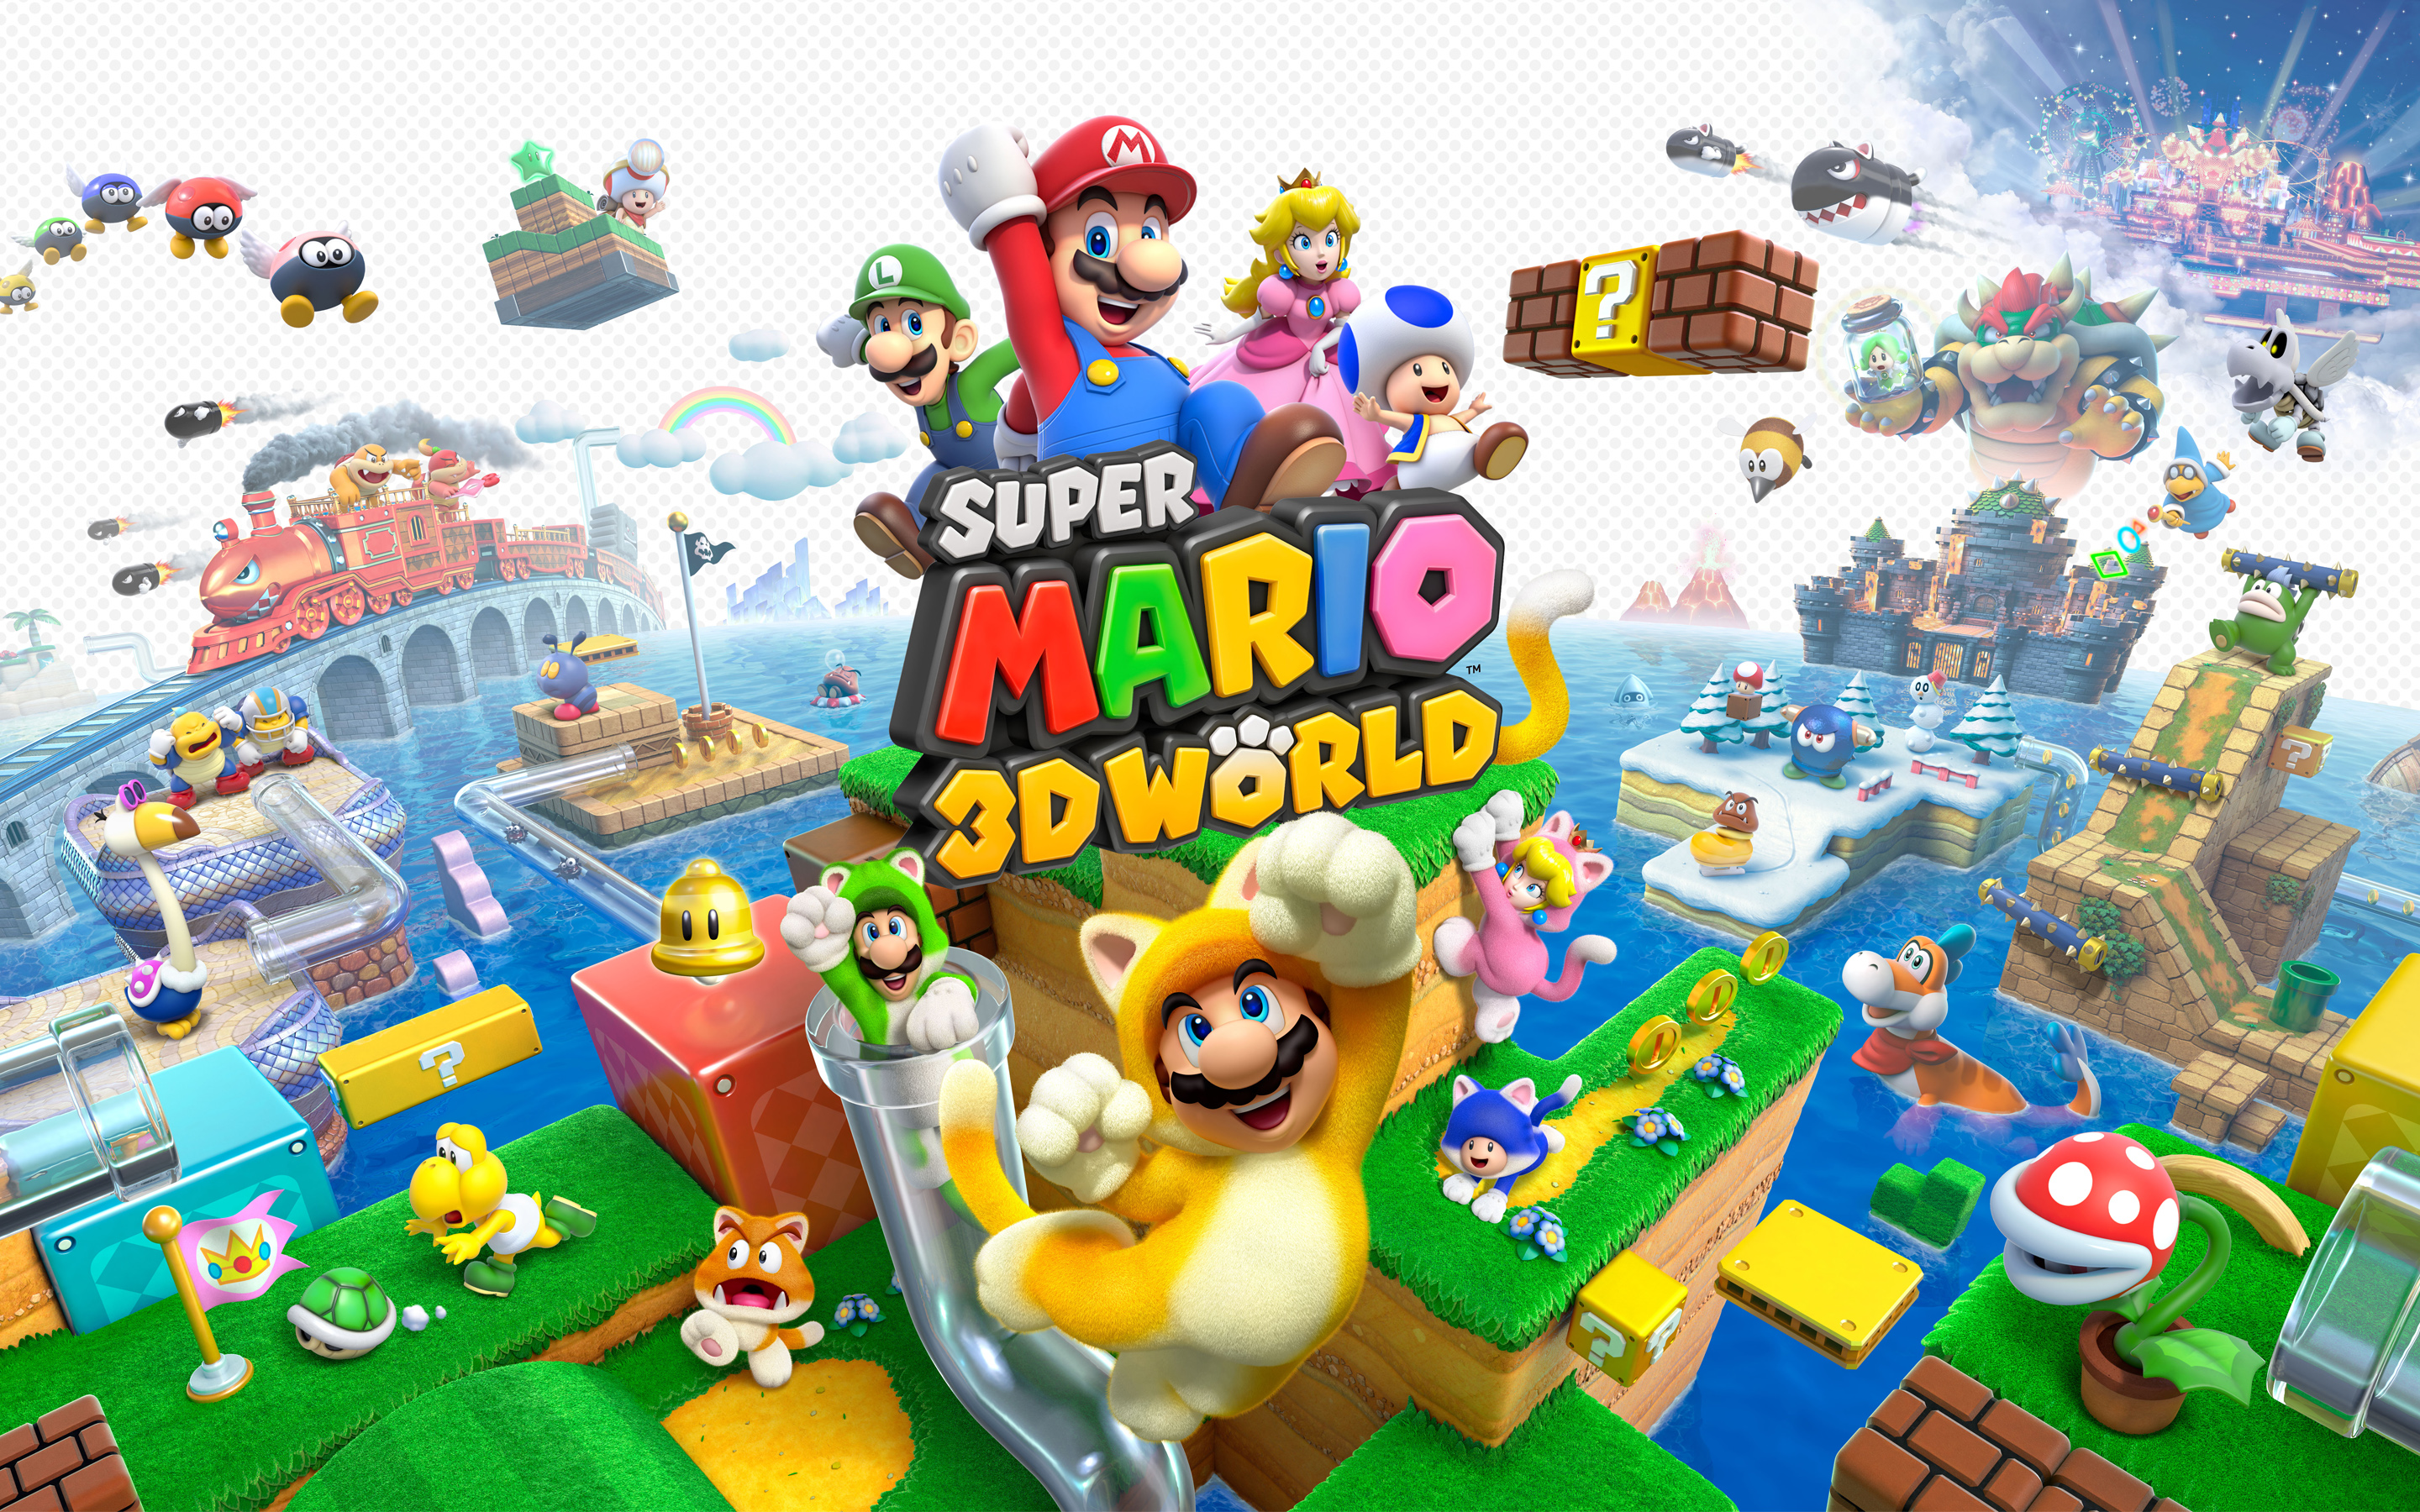 Super Mario 3D World 453.71 Kb